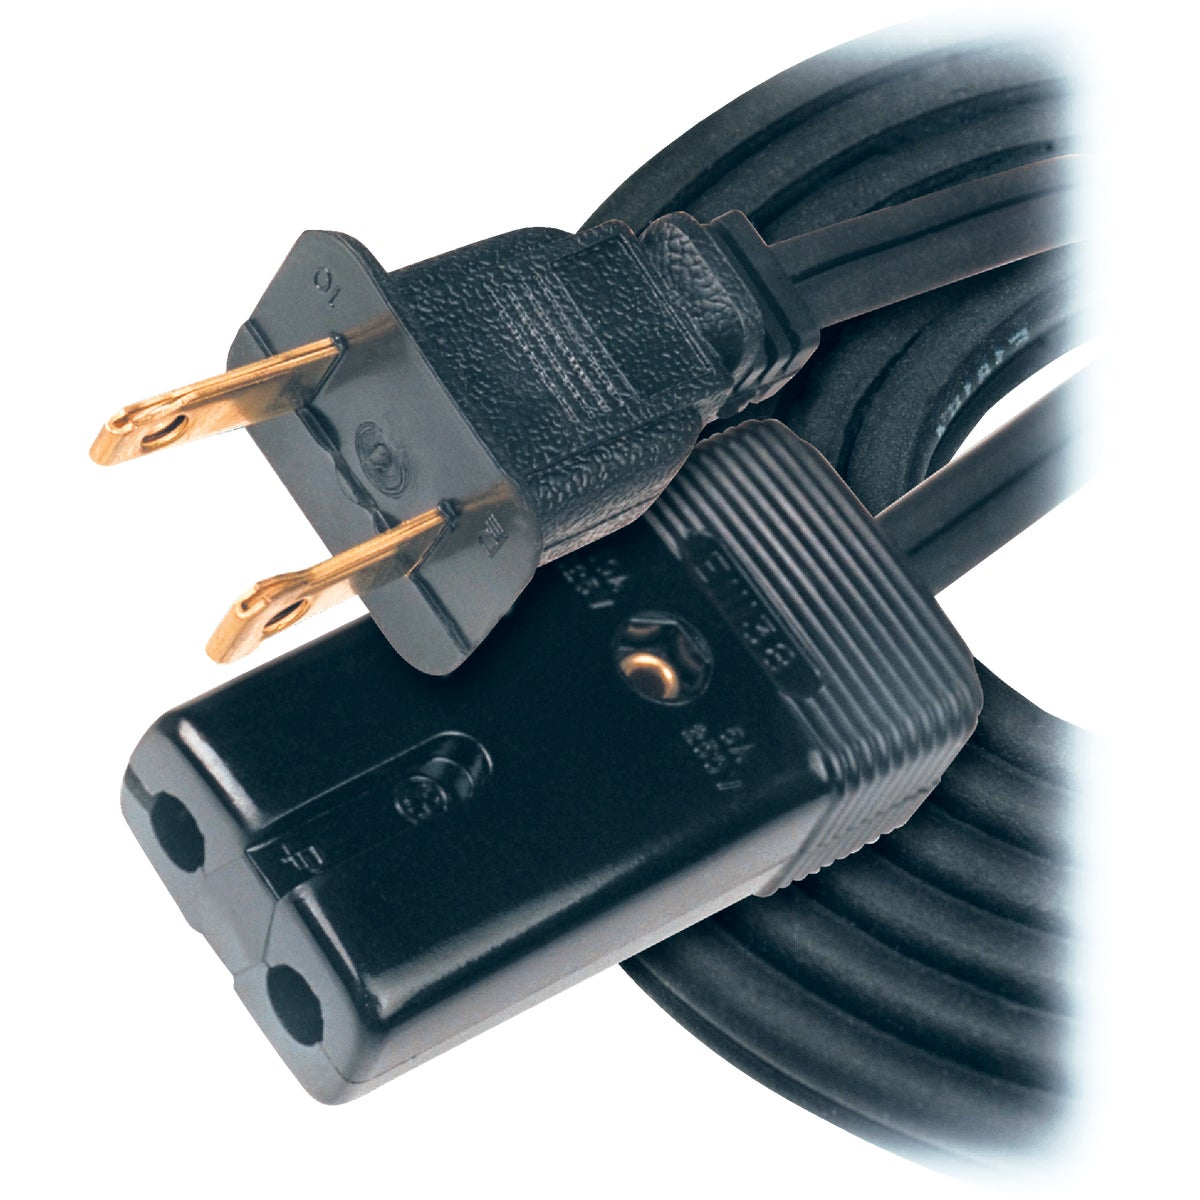 6' 18/2 APPLIANCE CORD - 550294 by Coleman Cable Hwg